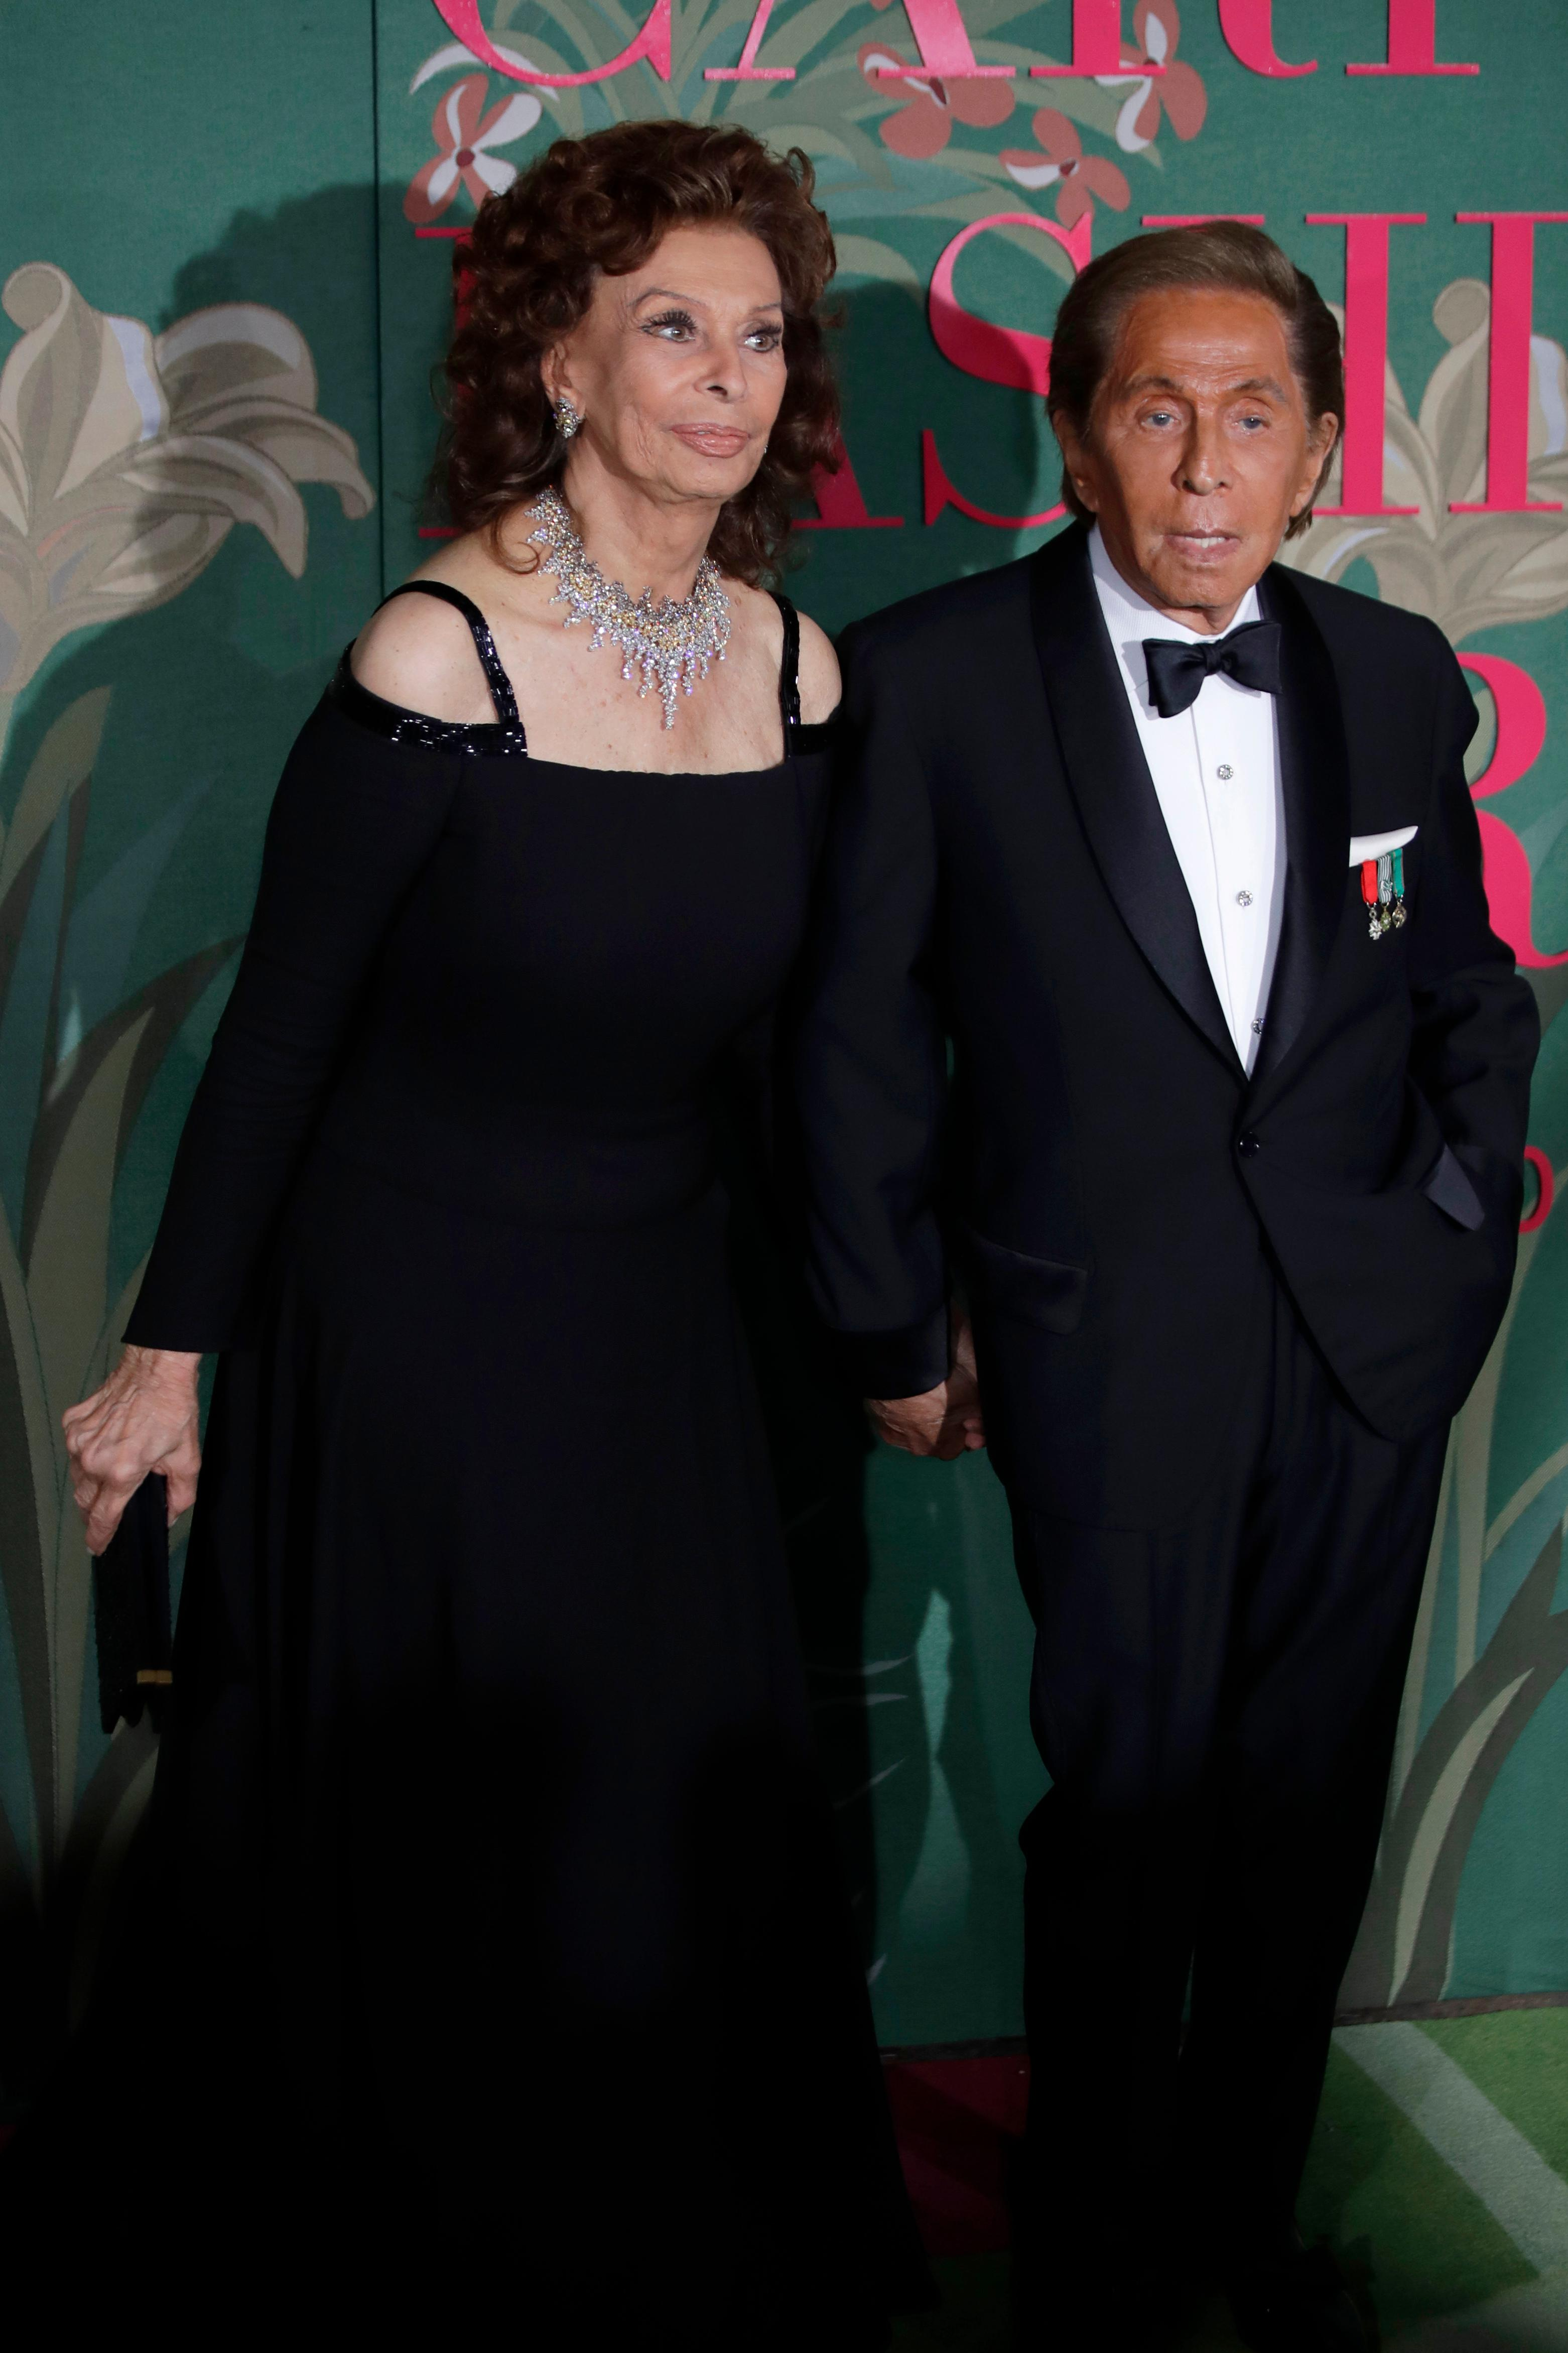 Designer Valentino Garavani, right, and actress Sophia Loren pose for photographers upon arrival at the Green Carpet Fashion Awards in Milan, Italy, Sunday, Sept. 22, 2019. (AP Photo/Luca Bruno)